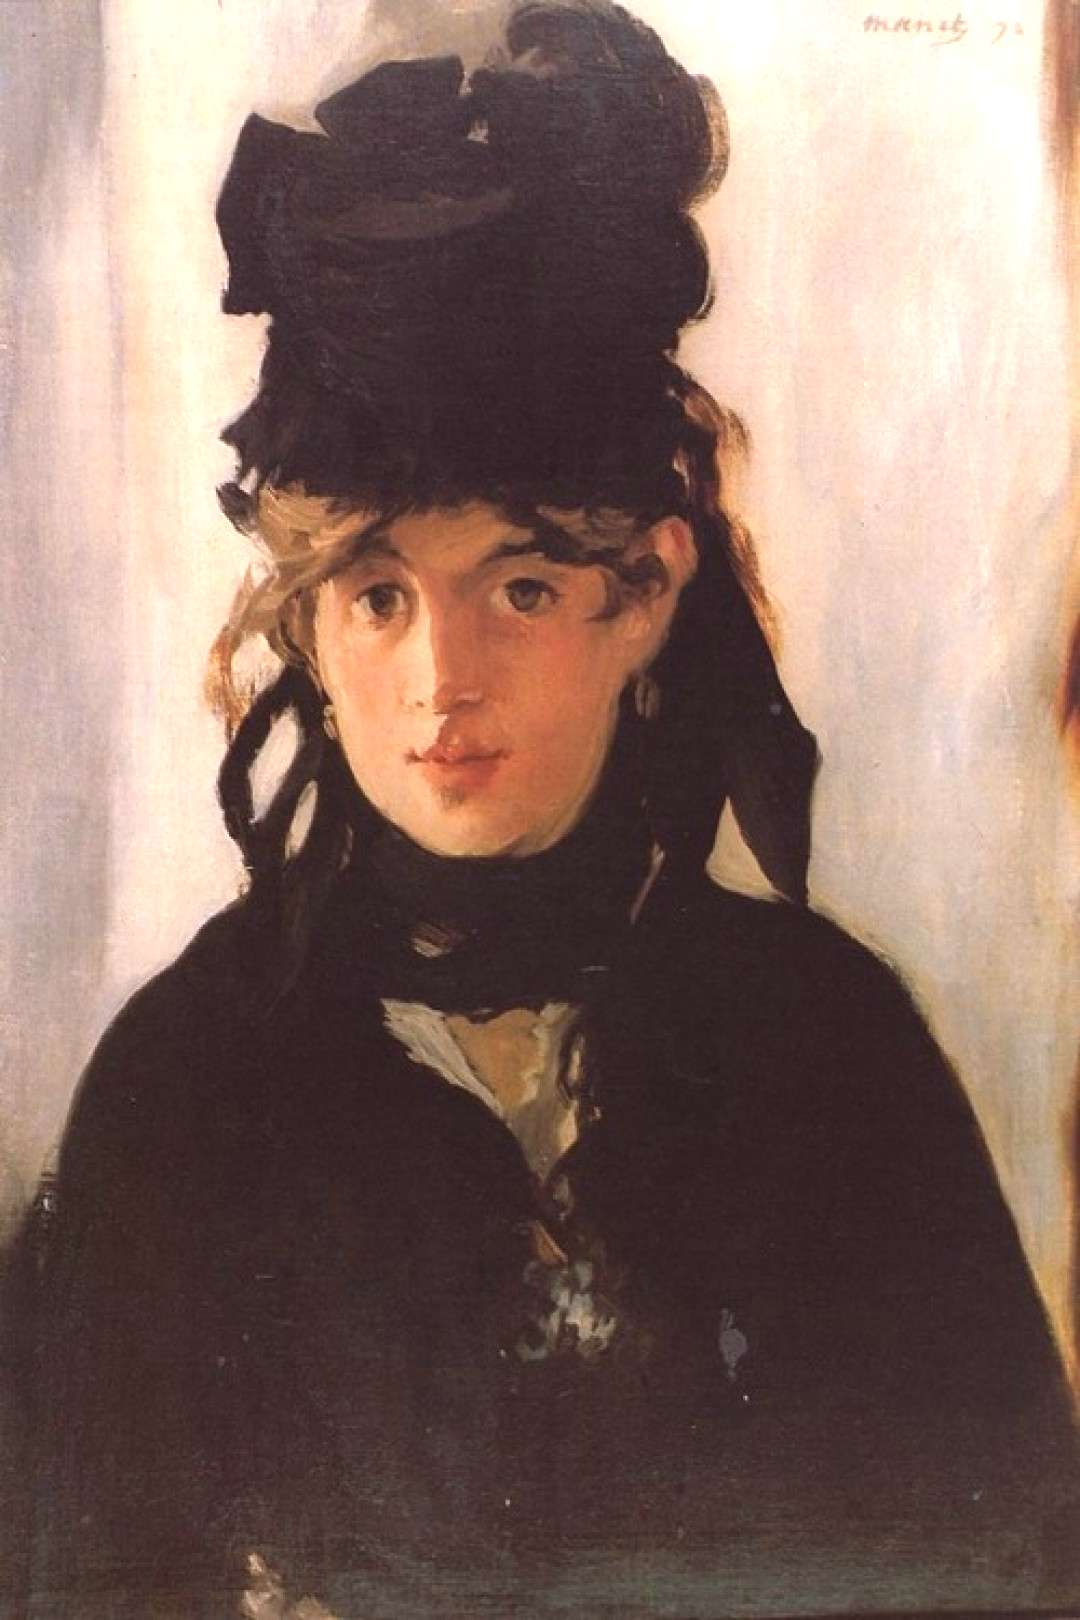 Edouard Manet Berthe Morisot with a bouquet of violets - Handmade Oil Painting Reproduction on Canv